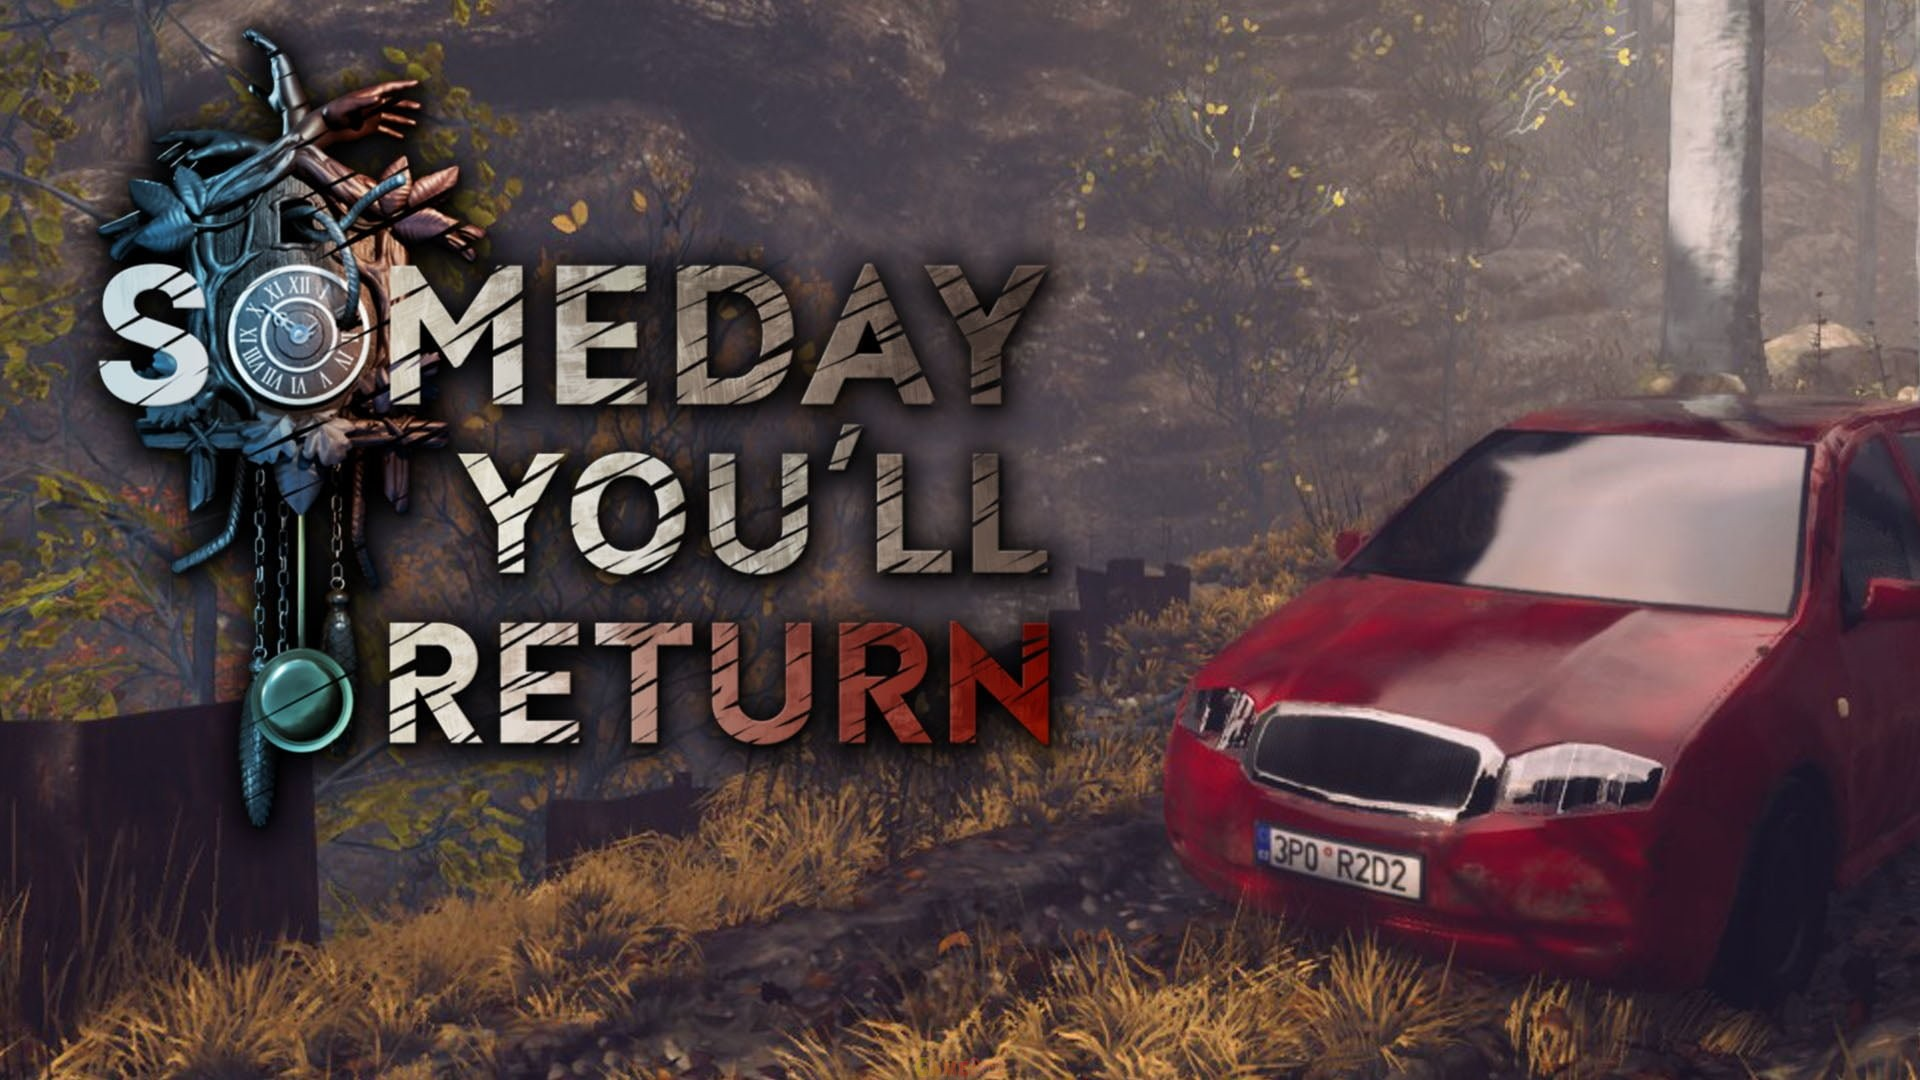 Someday You'll Return Mobile Android Game Version APK Download